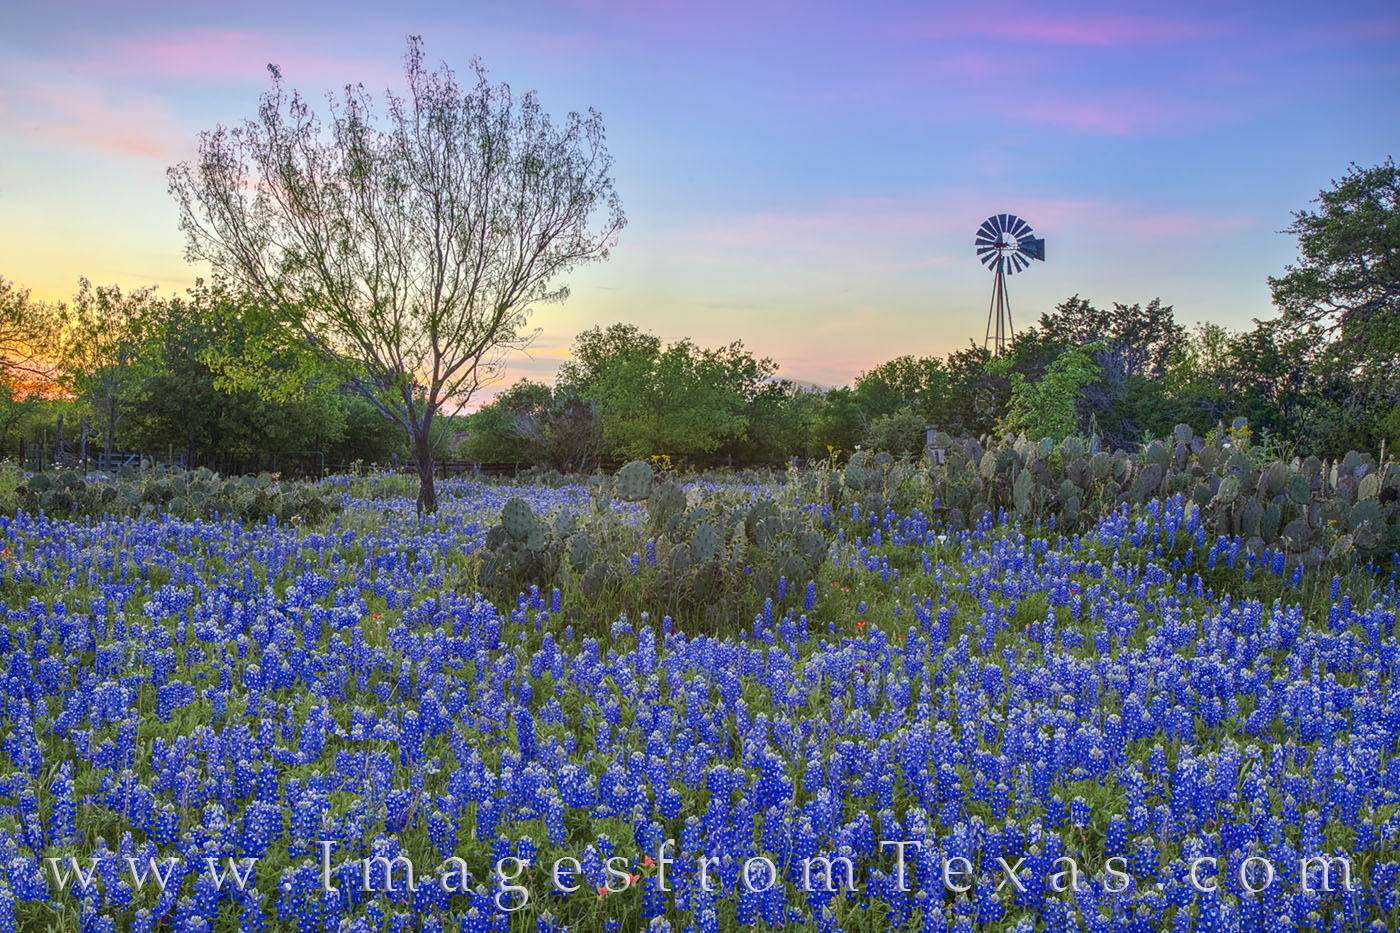 bluebonnets, wildflowers, windmill, hill country, sunset, evening, peace, quiet, cacti, paintbrush, solitude, flowers, spring, photo